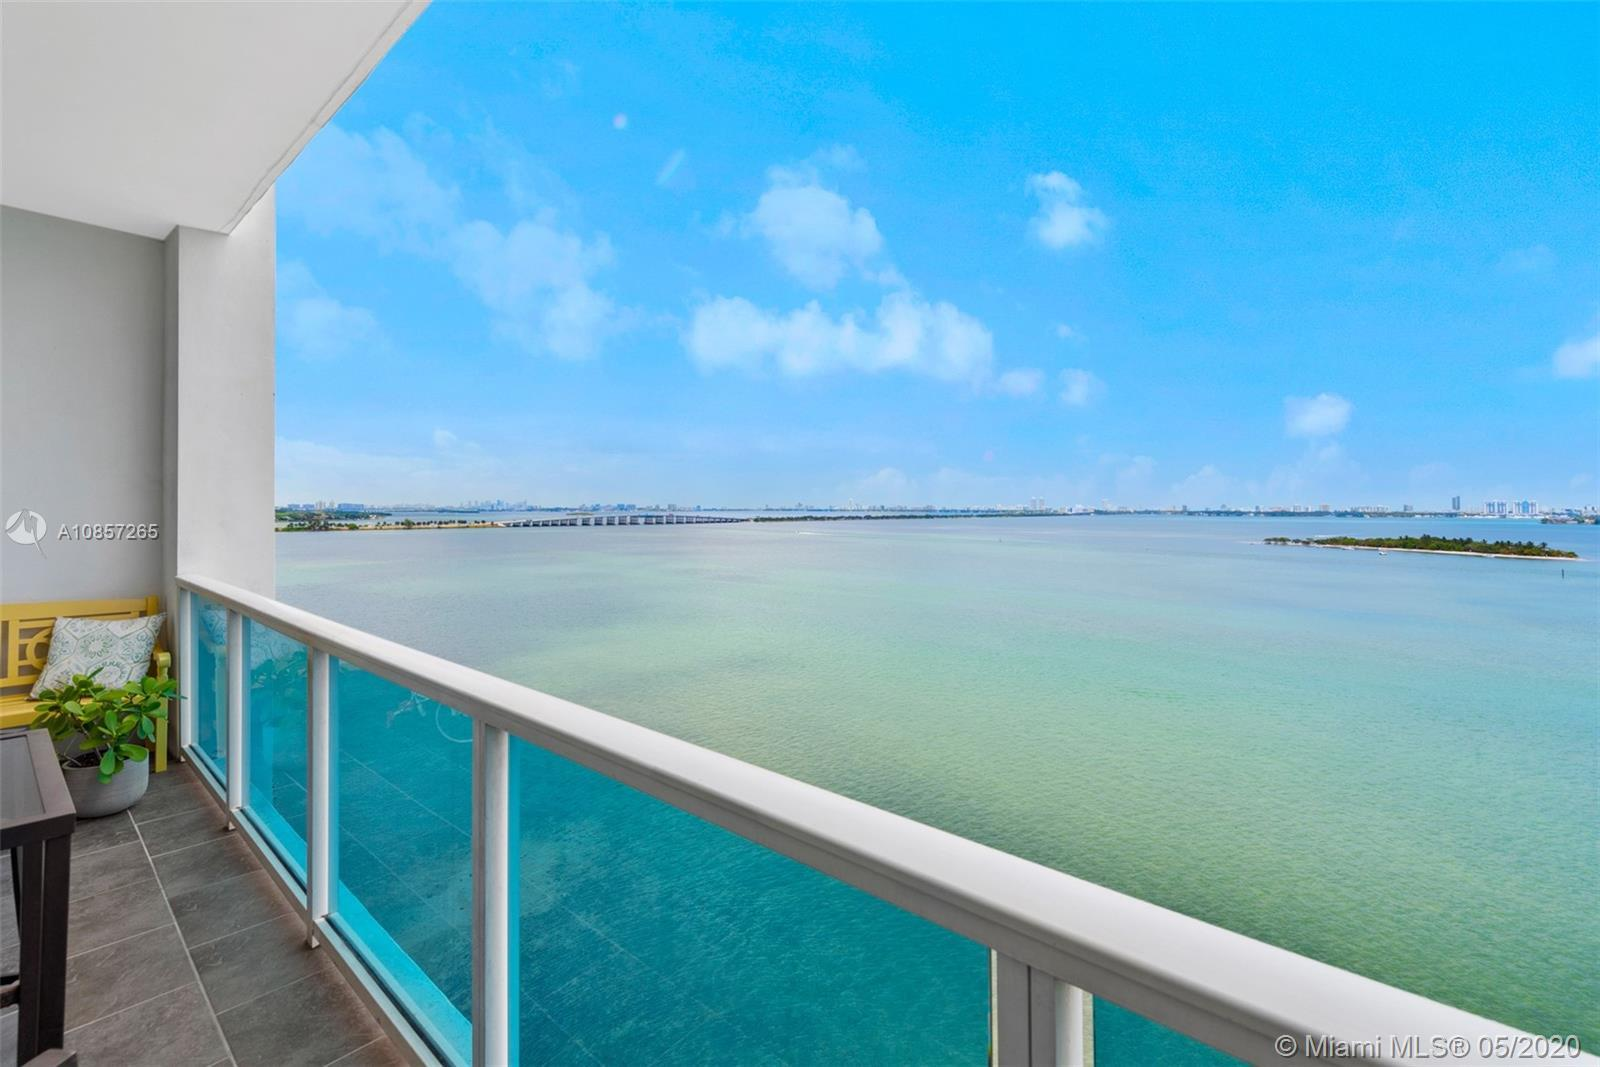 Luxury waterfront boutique condo building located in Edgewater. Enjoy spectacular, unobstructed bay